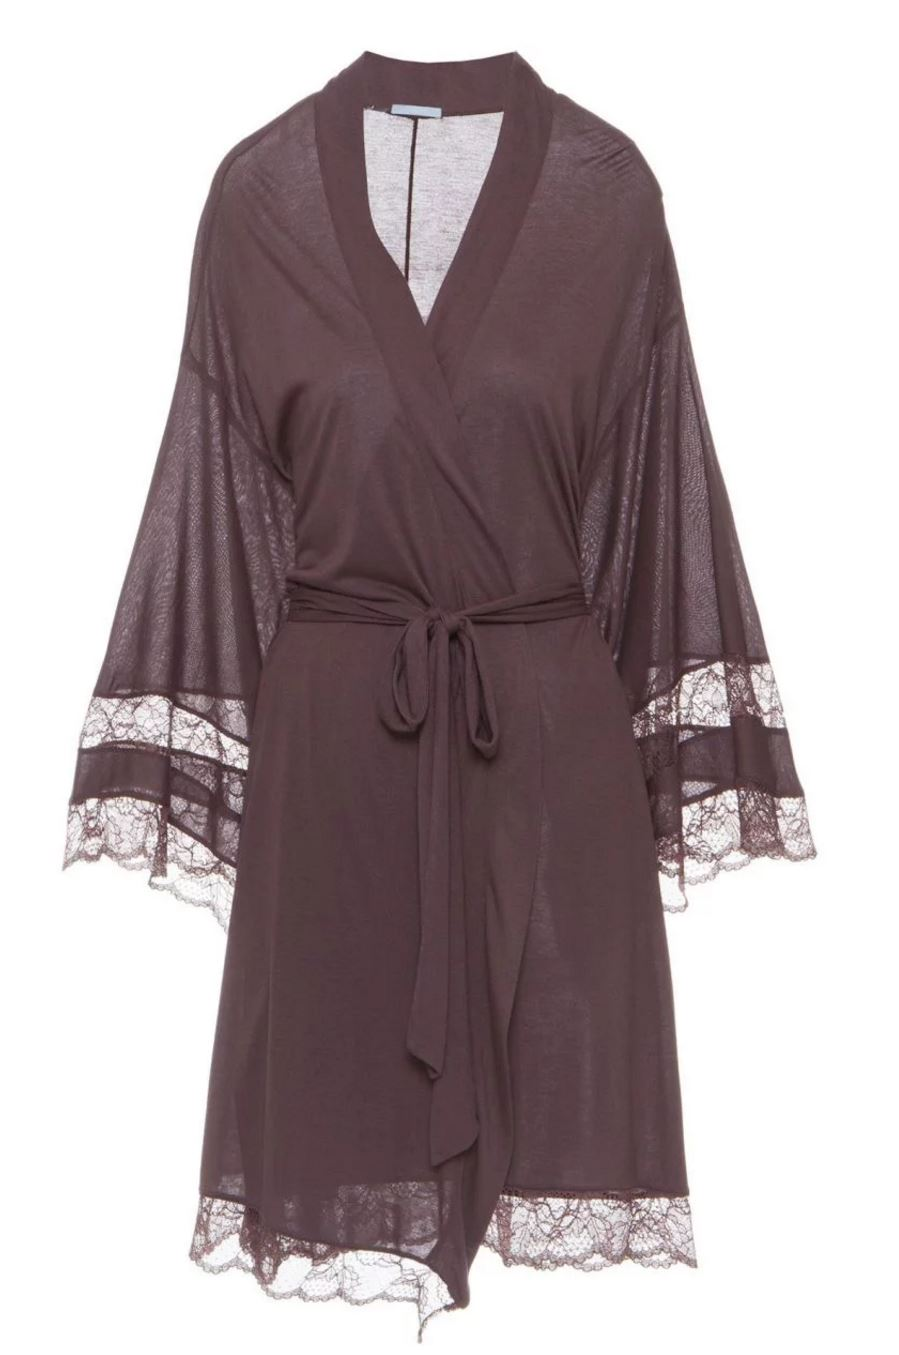 An  Eberjey  silk robe could be just the thing to spoil Mum, by adding some luxe and simple pleasures to her every day items at home.